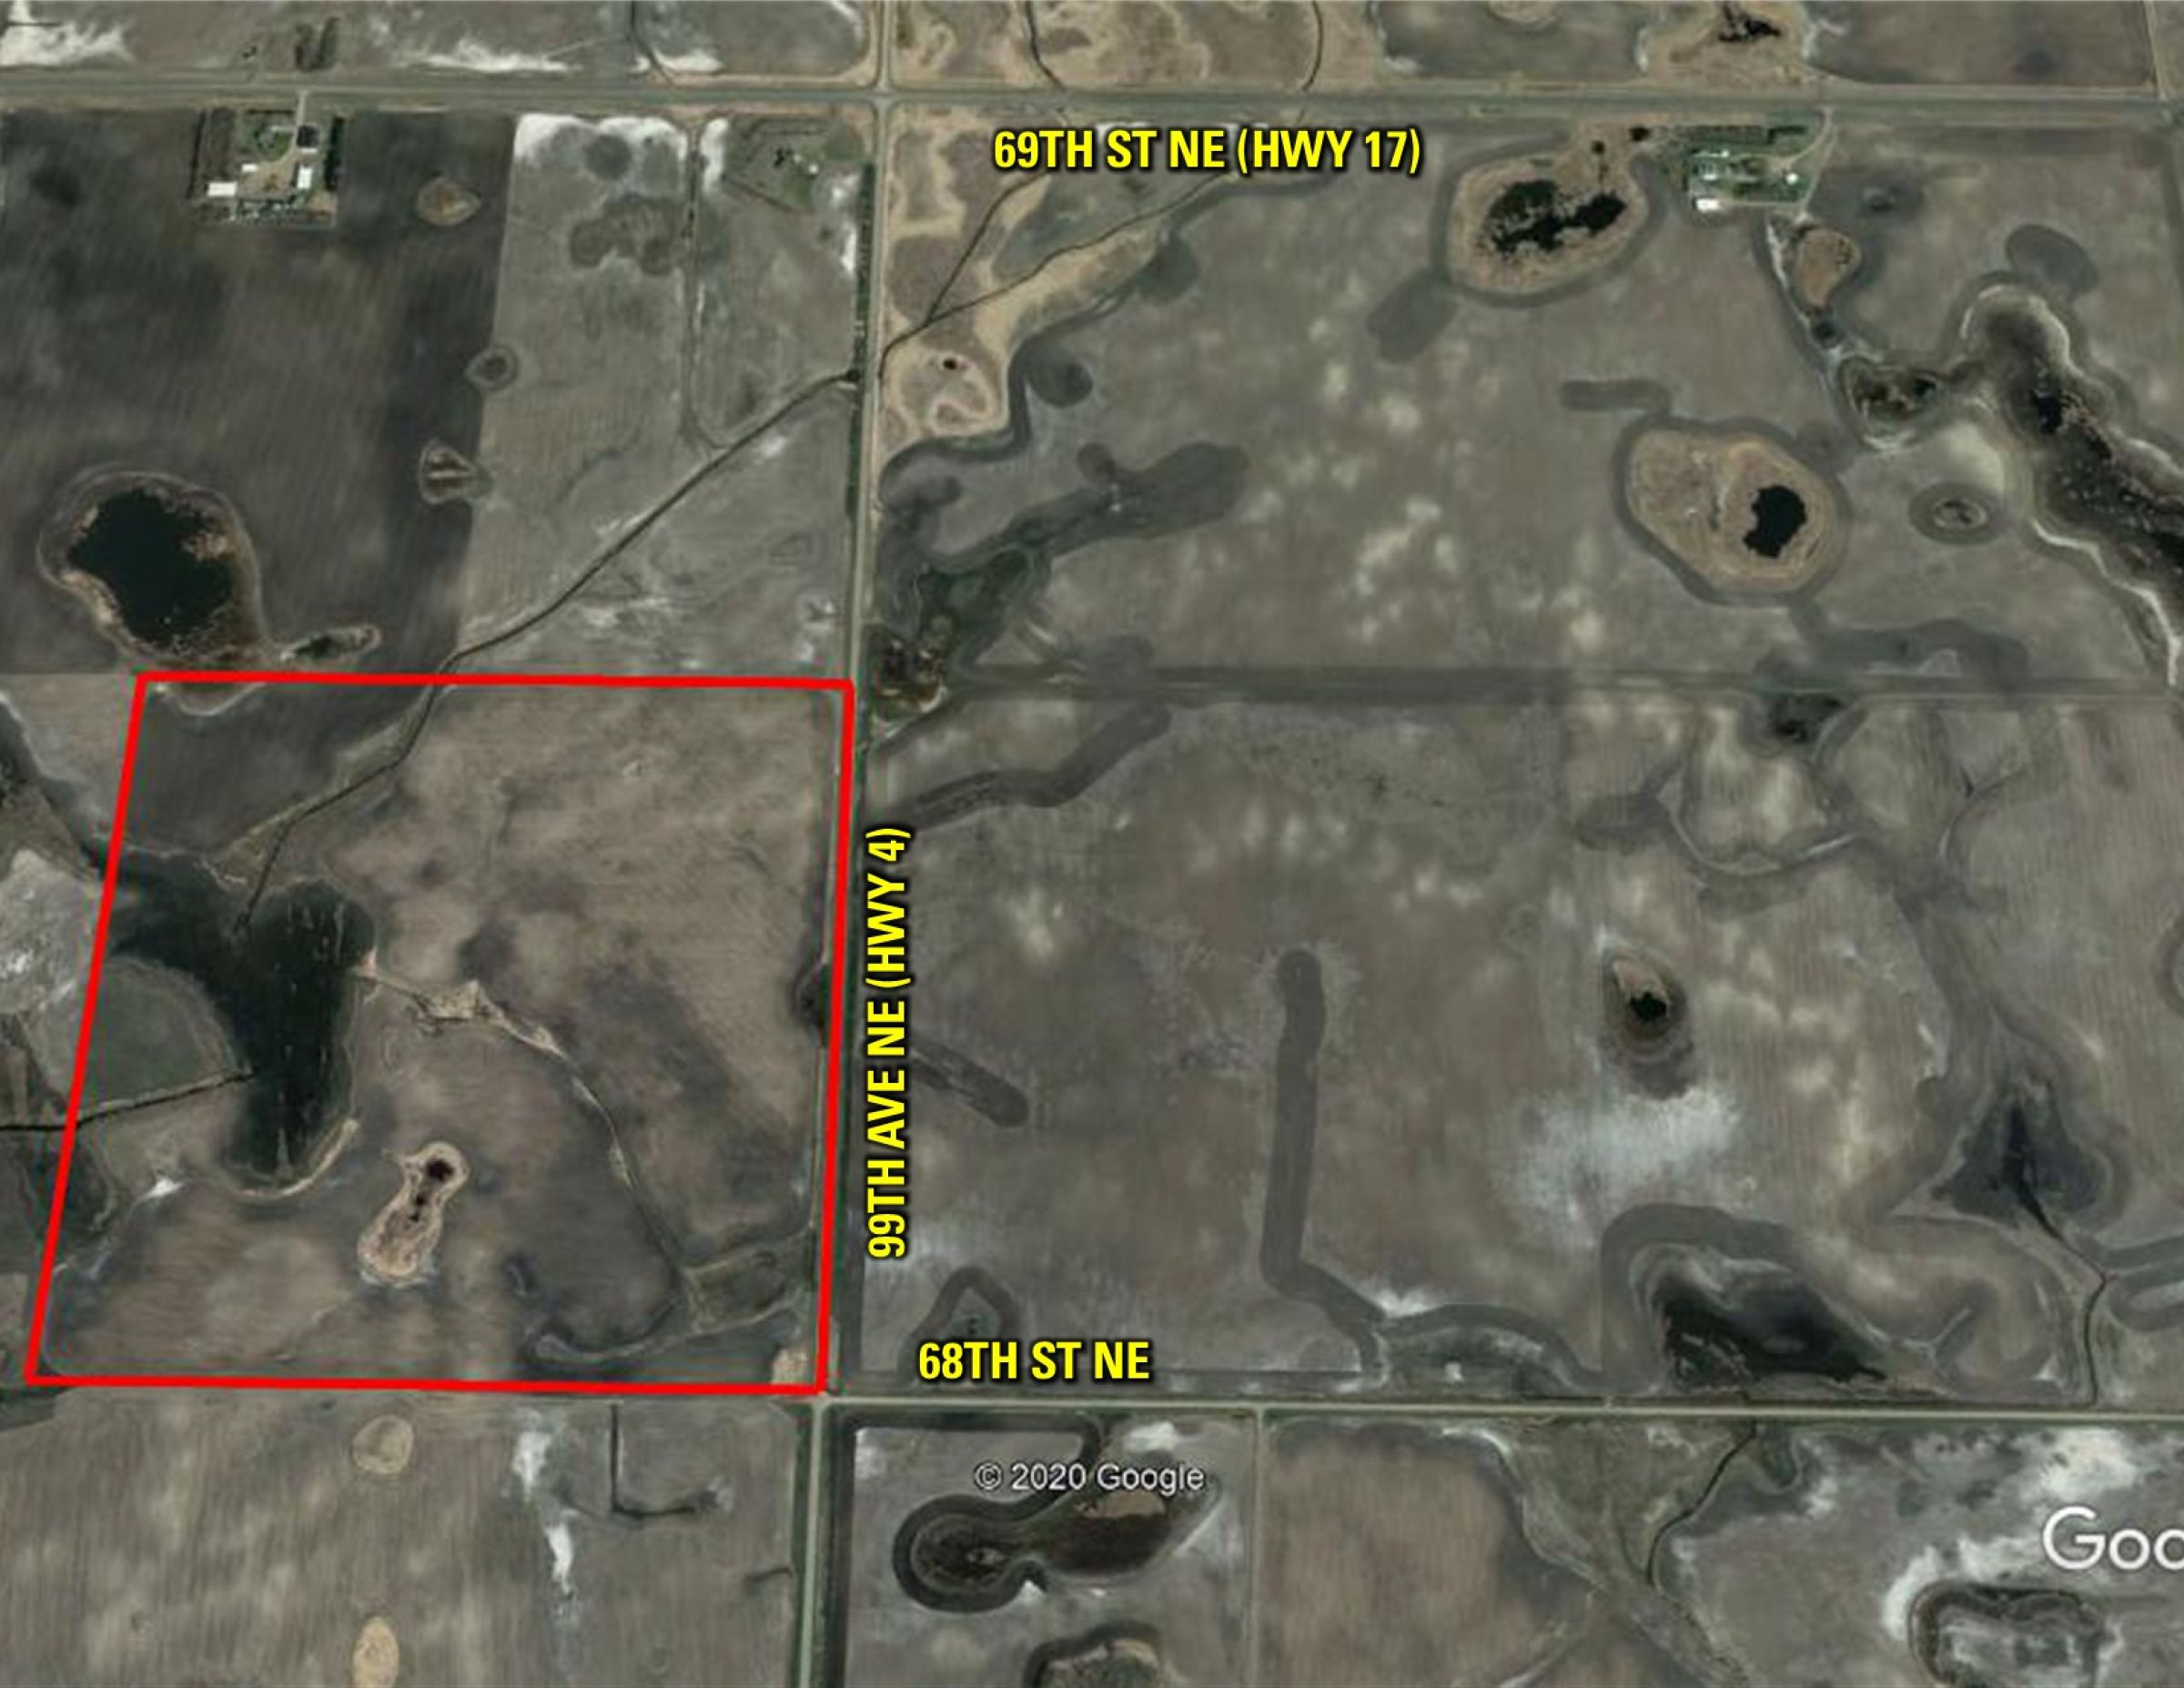 land-ramsey-county-north-dakota-157-acres-listing-number-15291-0-2020-12-14-170853.jpg